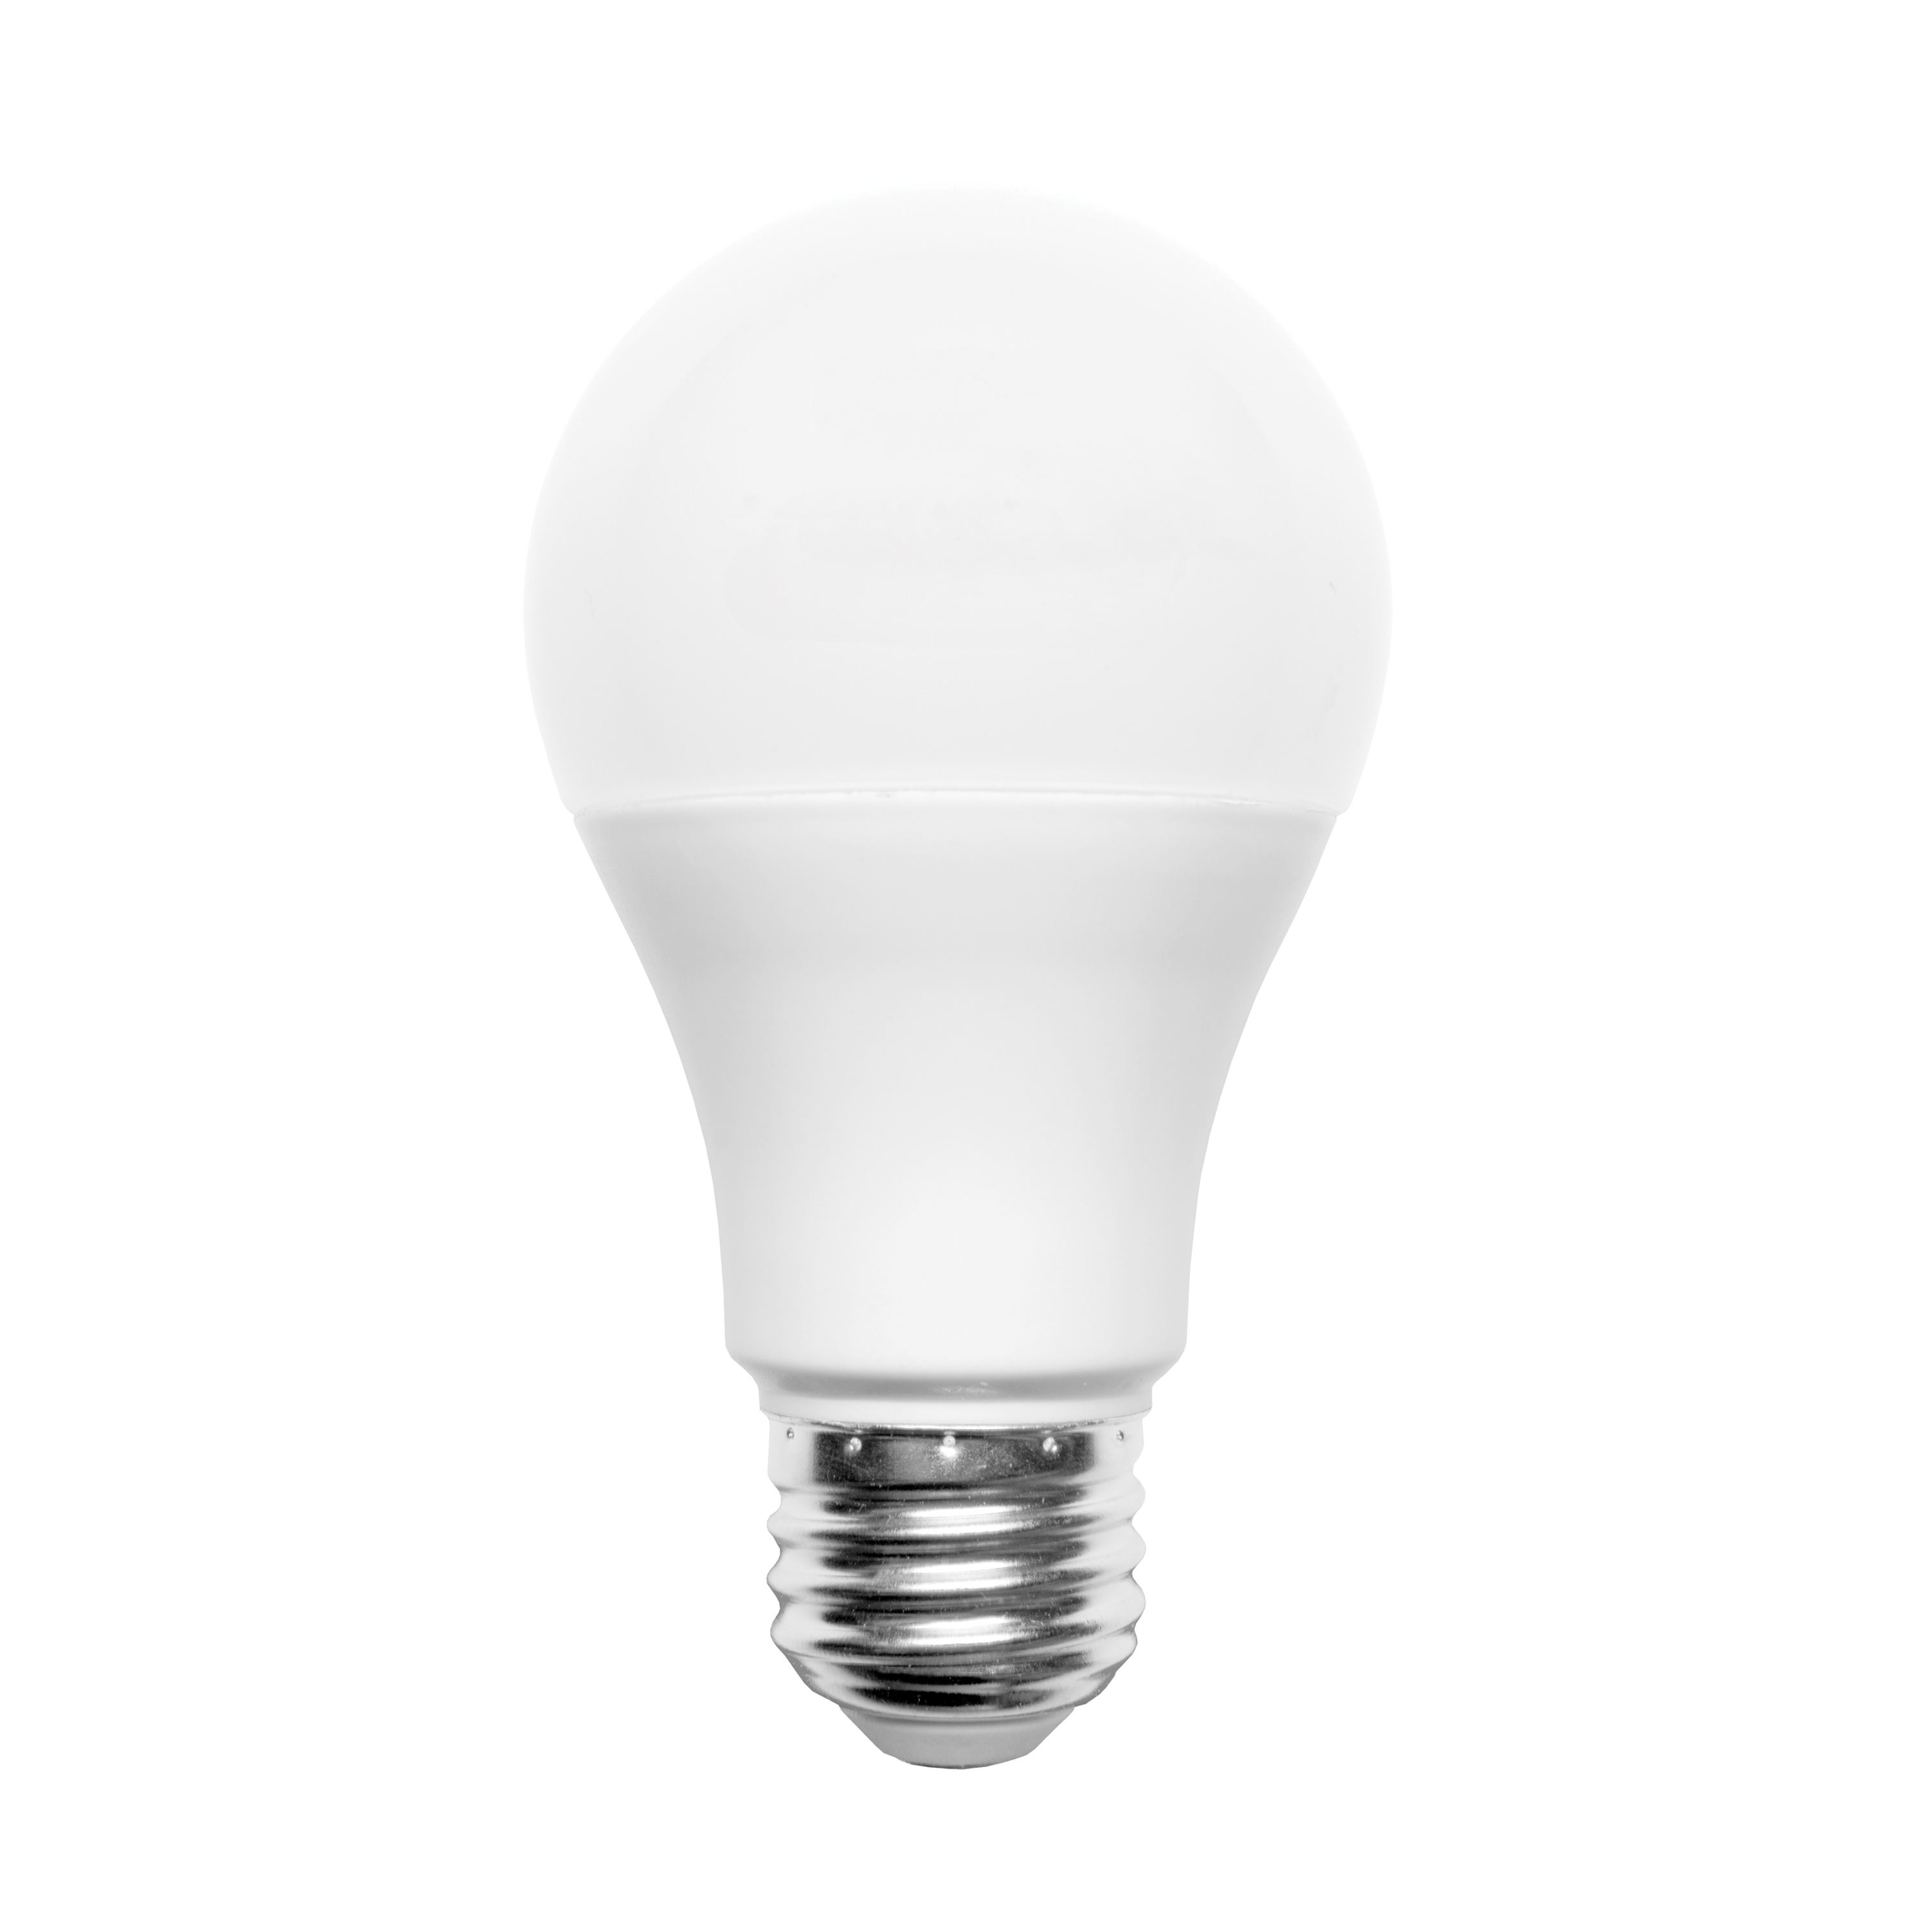 HeT LED BULB 5.5W (40W Equivalent) E26 4000K - Bright White Non-Dimmable UL Listed